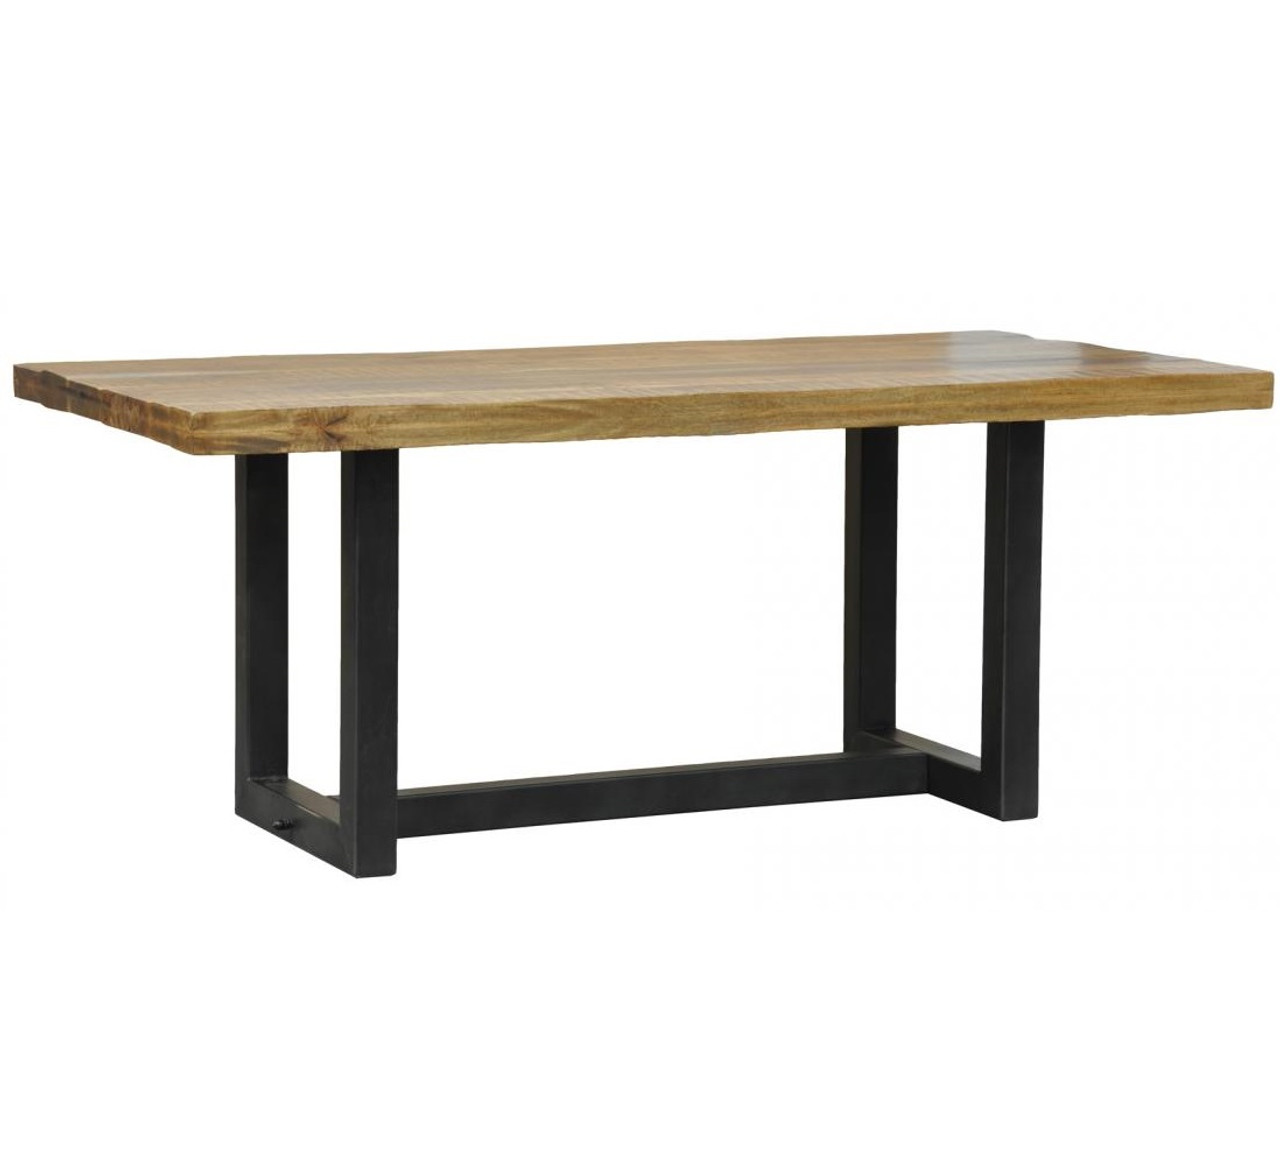 Restoration metal wood quot dining table zin home